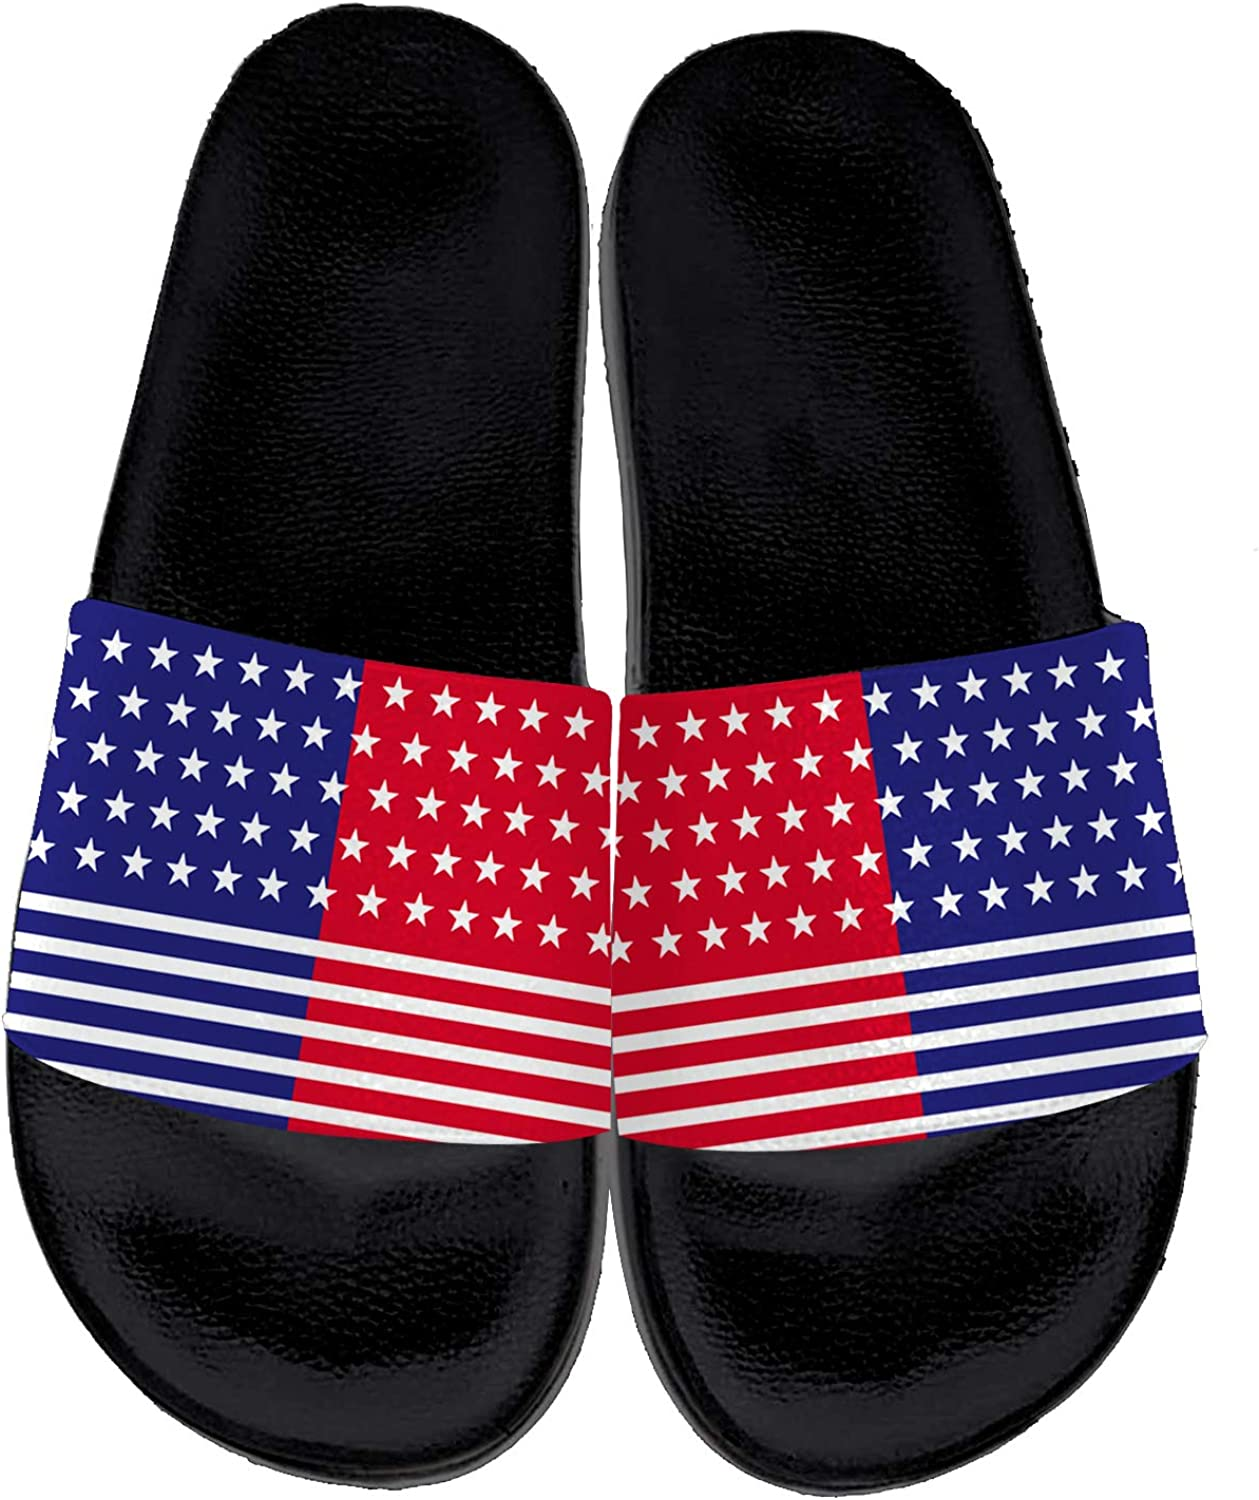 Uminder American Flag Slippers for Men Women Personalited Casual